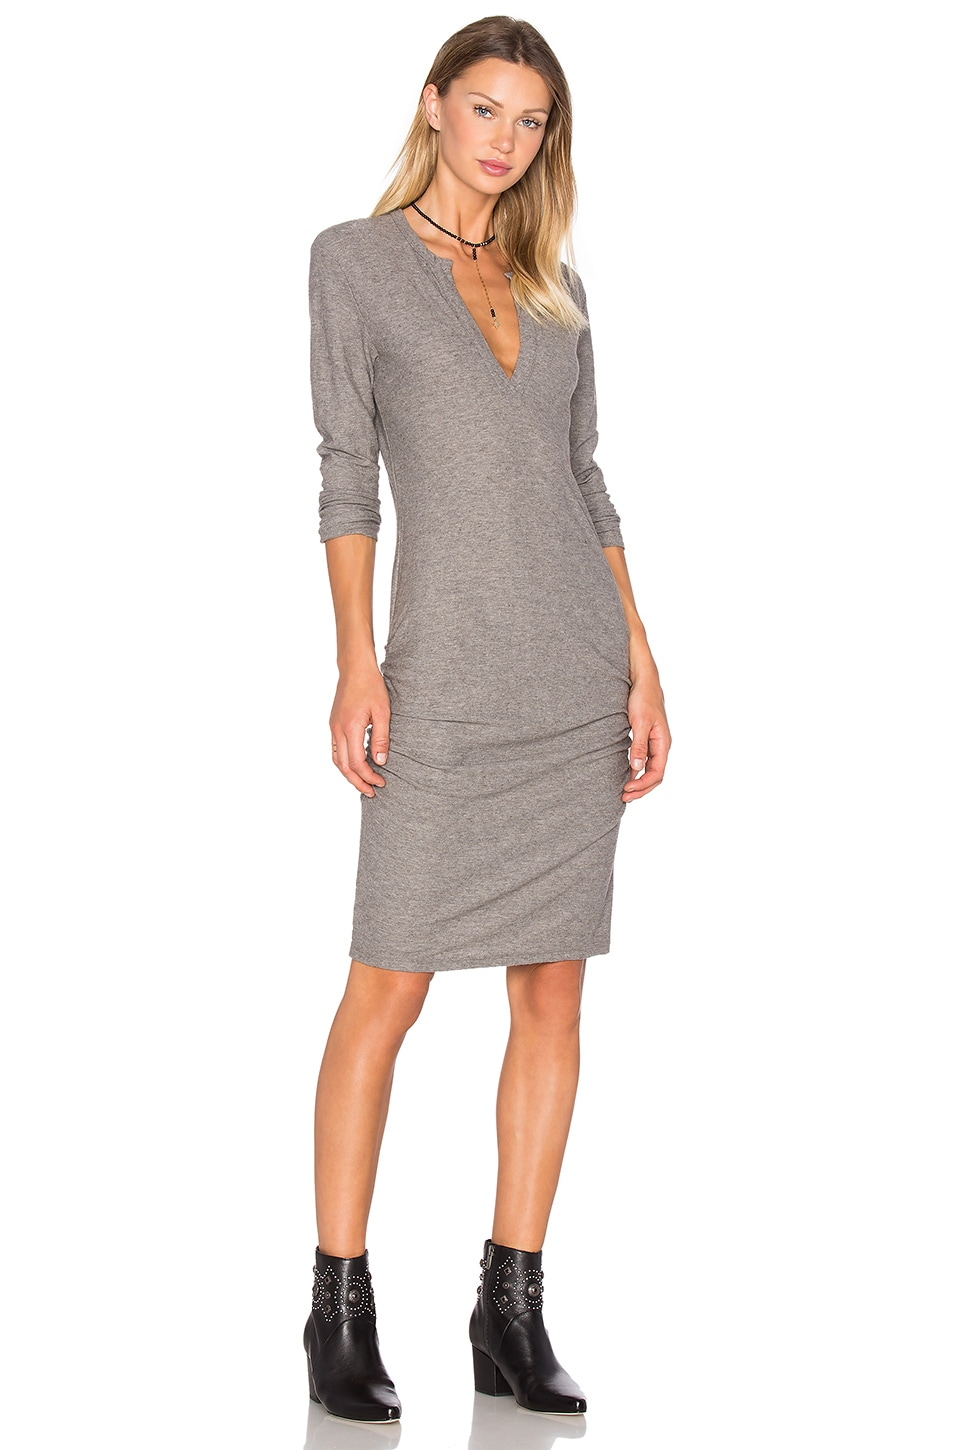 James Perse Henley Dress in Charcoal Melange